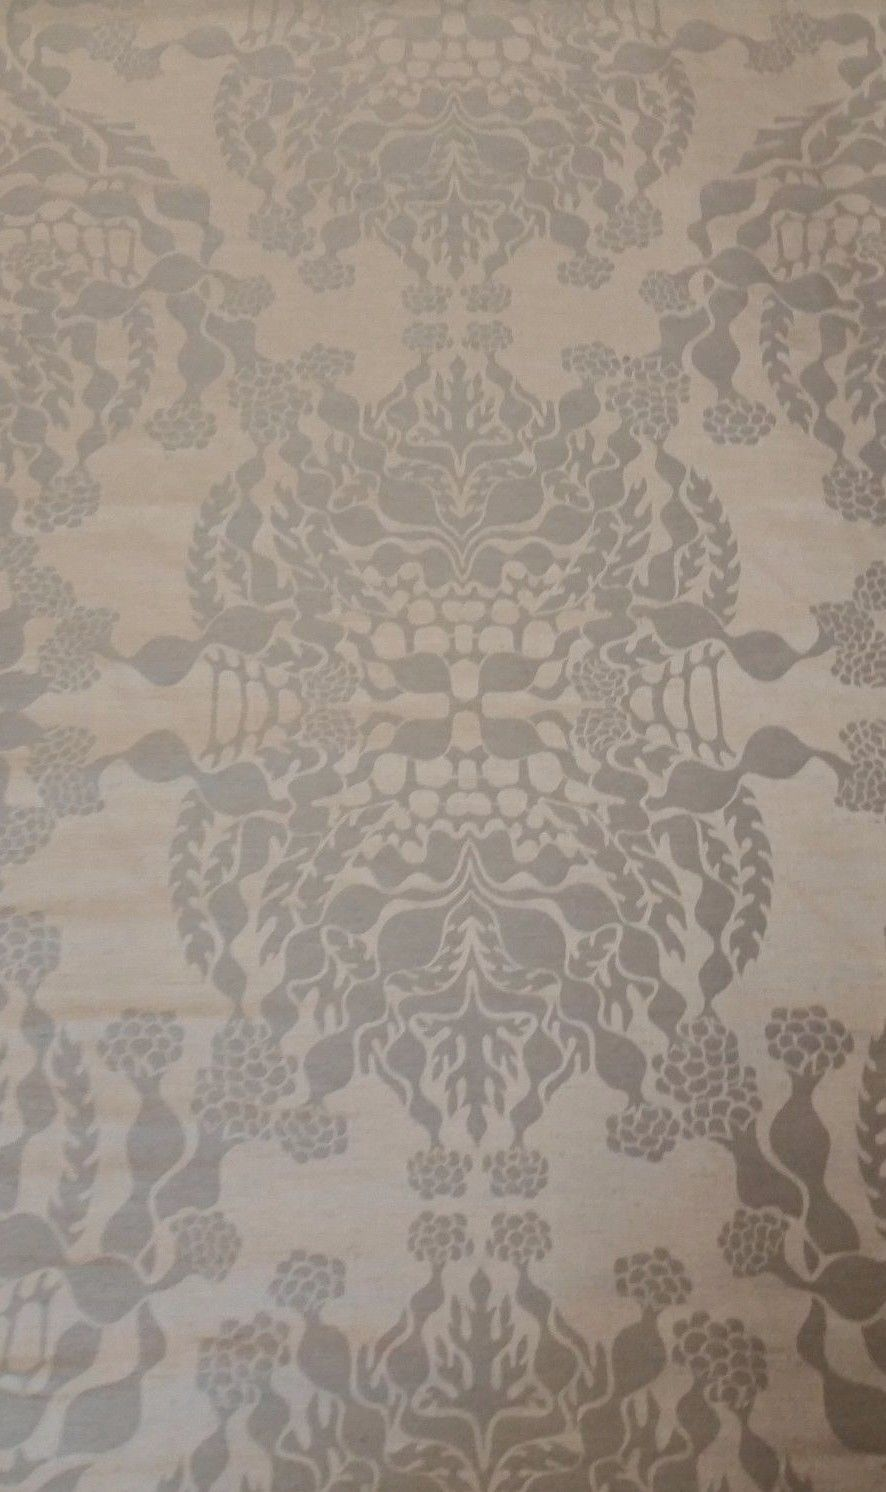 2.625 yds Knoll Luxe Upholstery Fabric Mepal Damask Nickel Silver K12315 PZ10